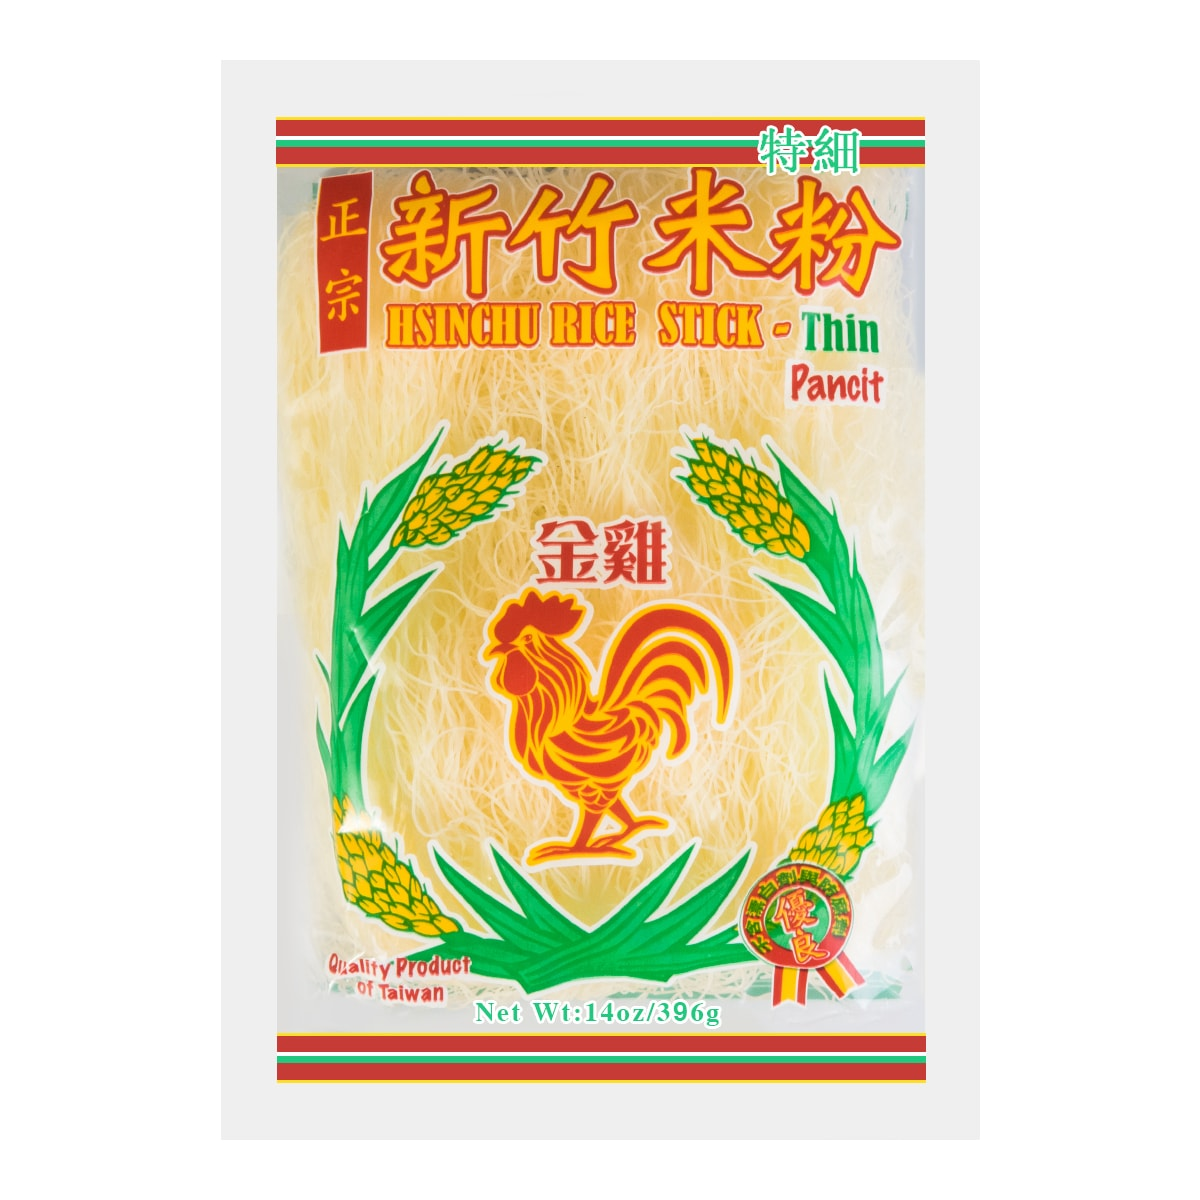 HSINCHU Rice Stick Thin 396g